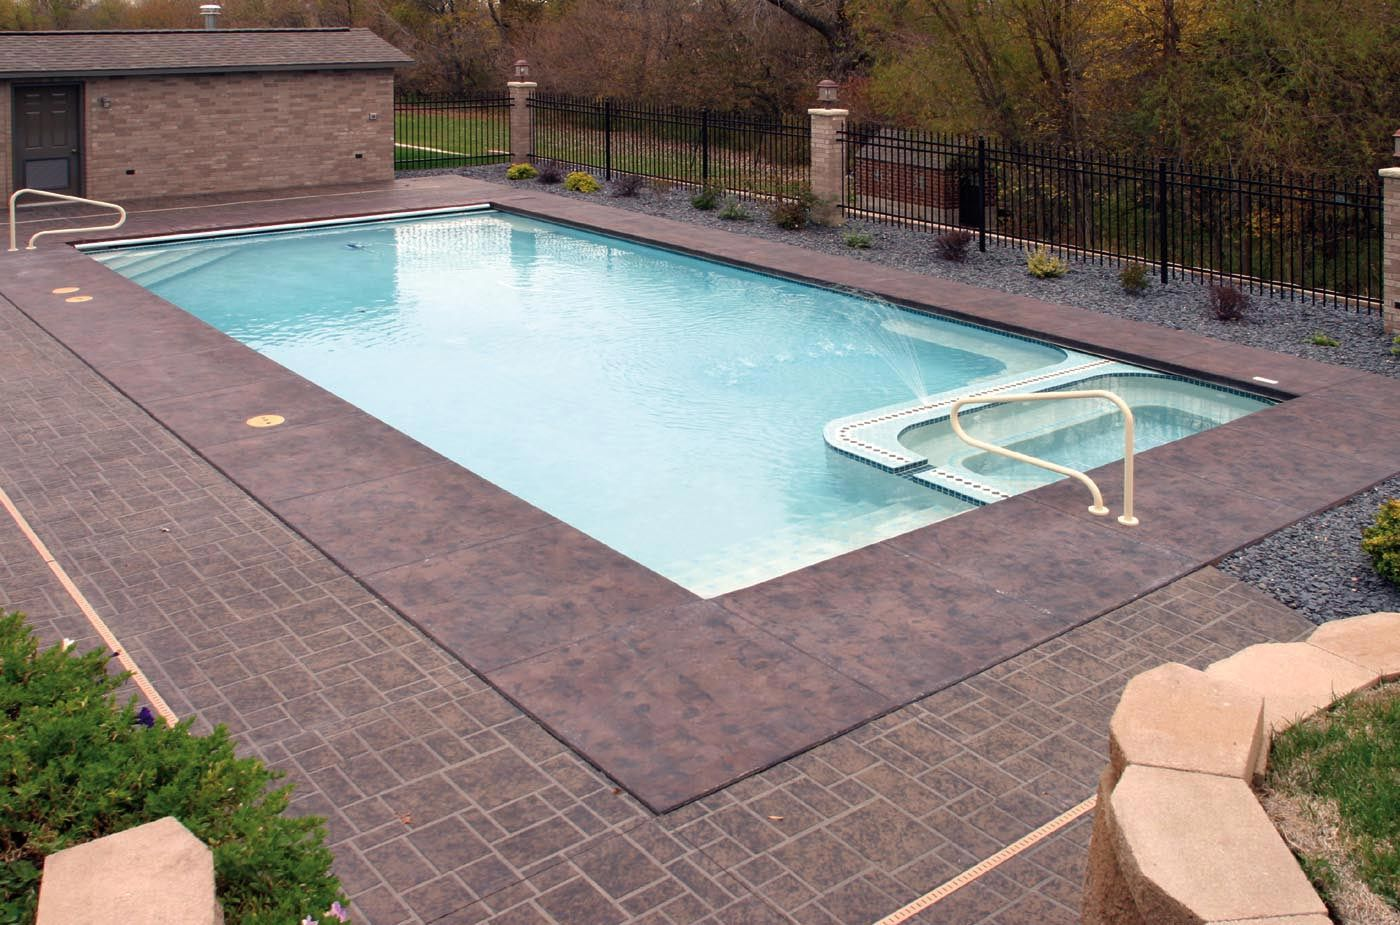 rectangle inground pools with hot tubs awesome ideas 13656 pools - Rectangle Pool With Spa